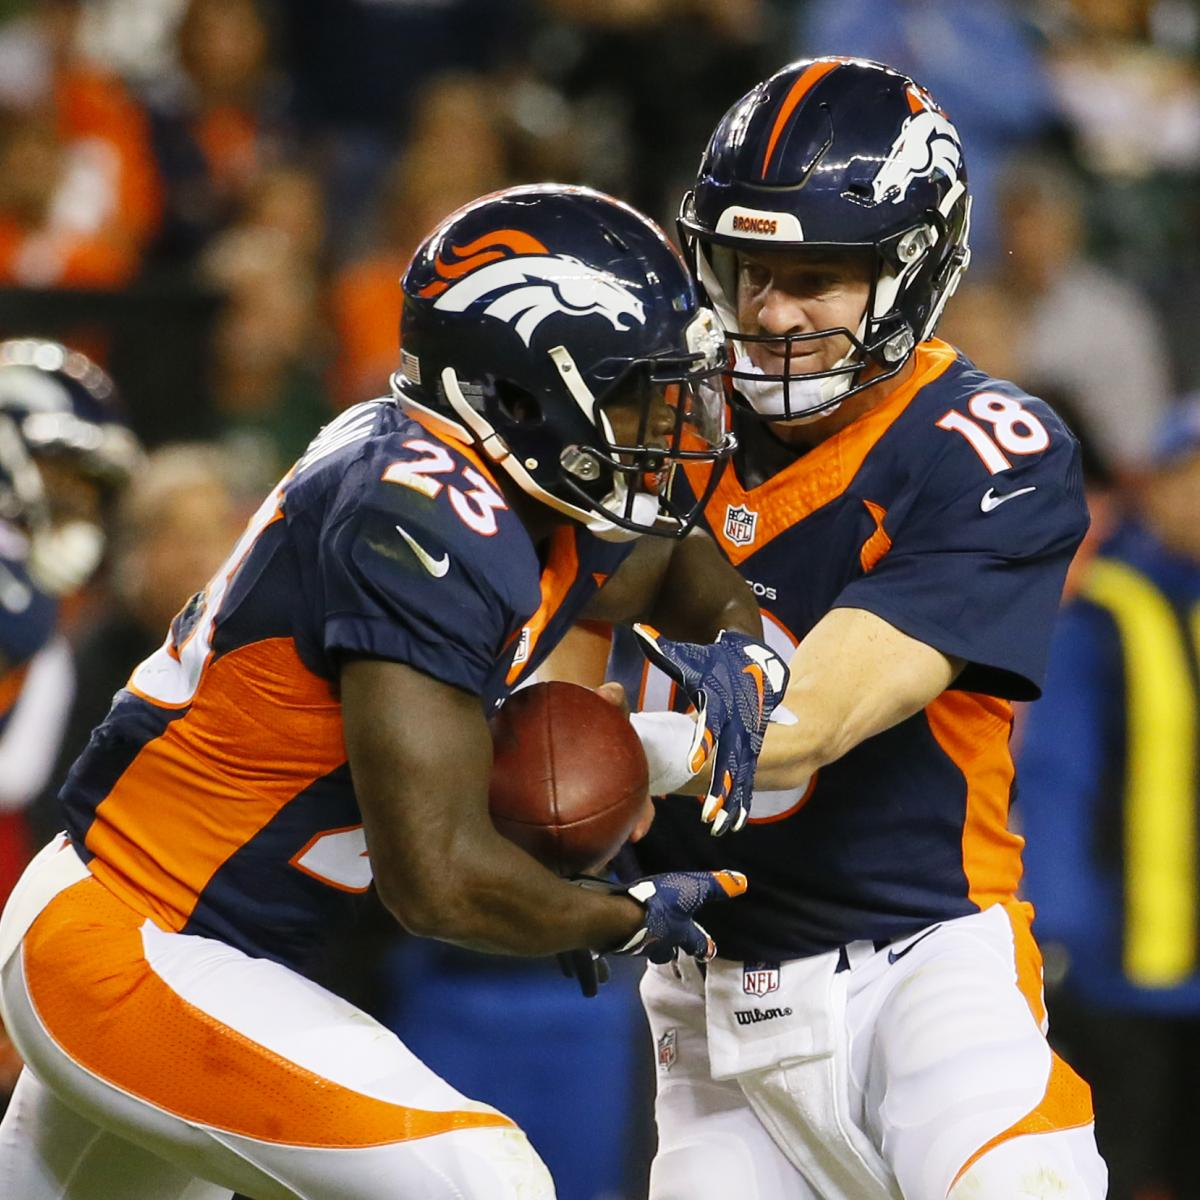 Denver Broncos Vs. Indianapolis Colts Betting Odds